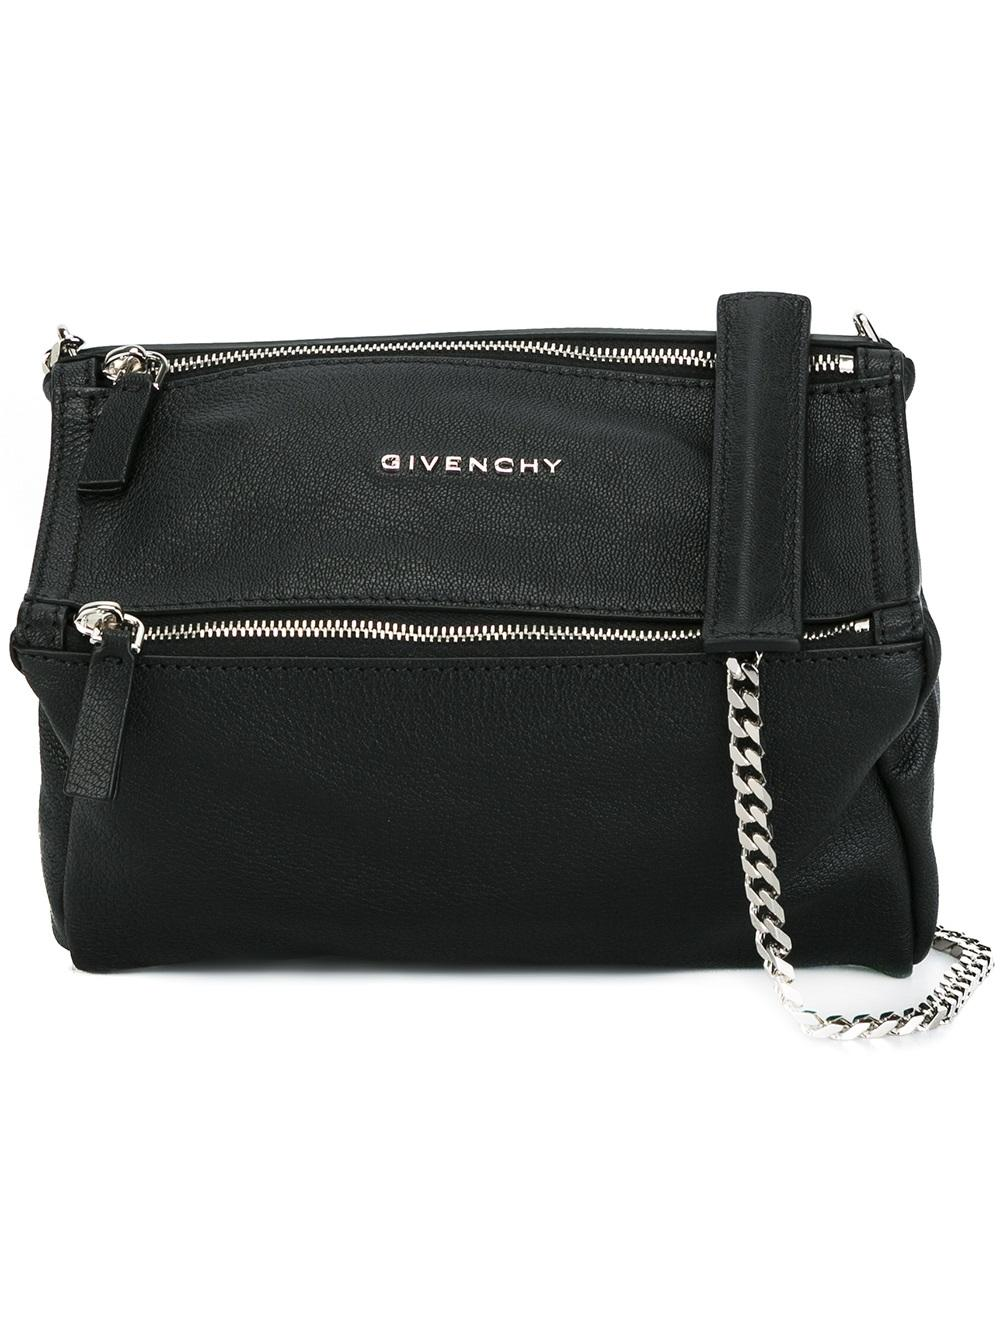 Givenchy PANDORA CHAIN MINI